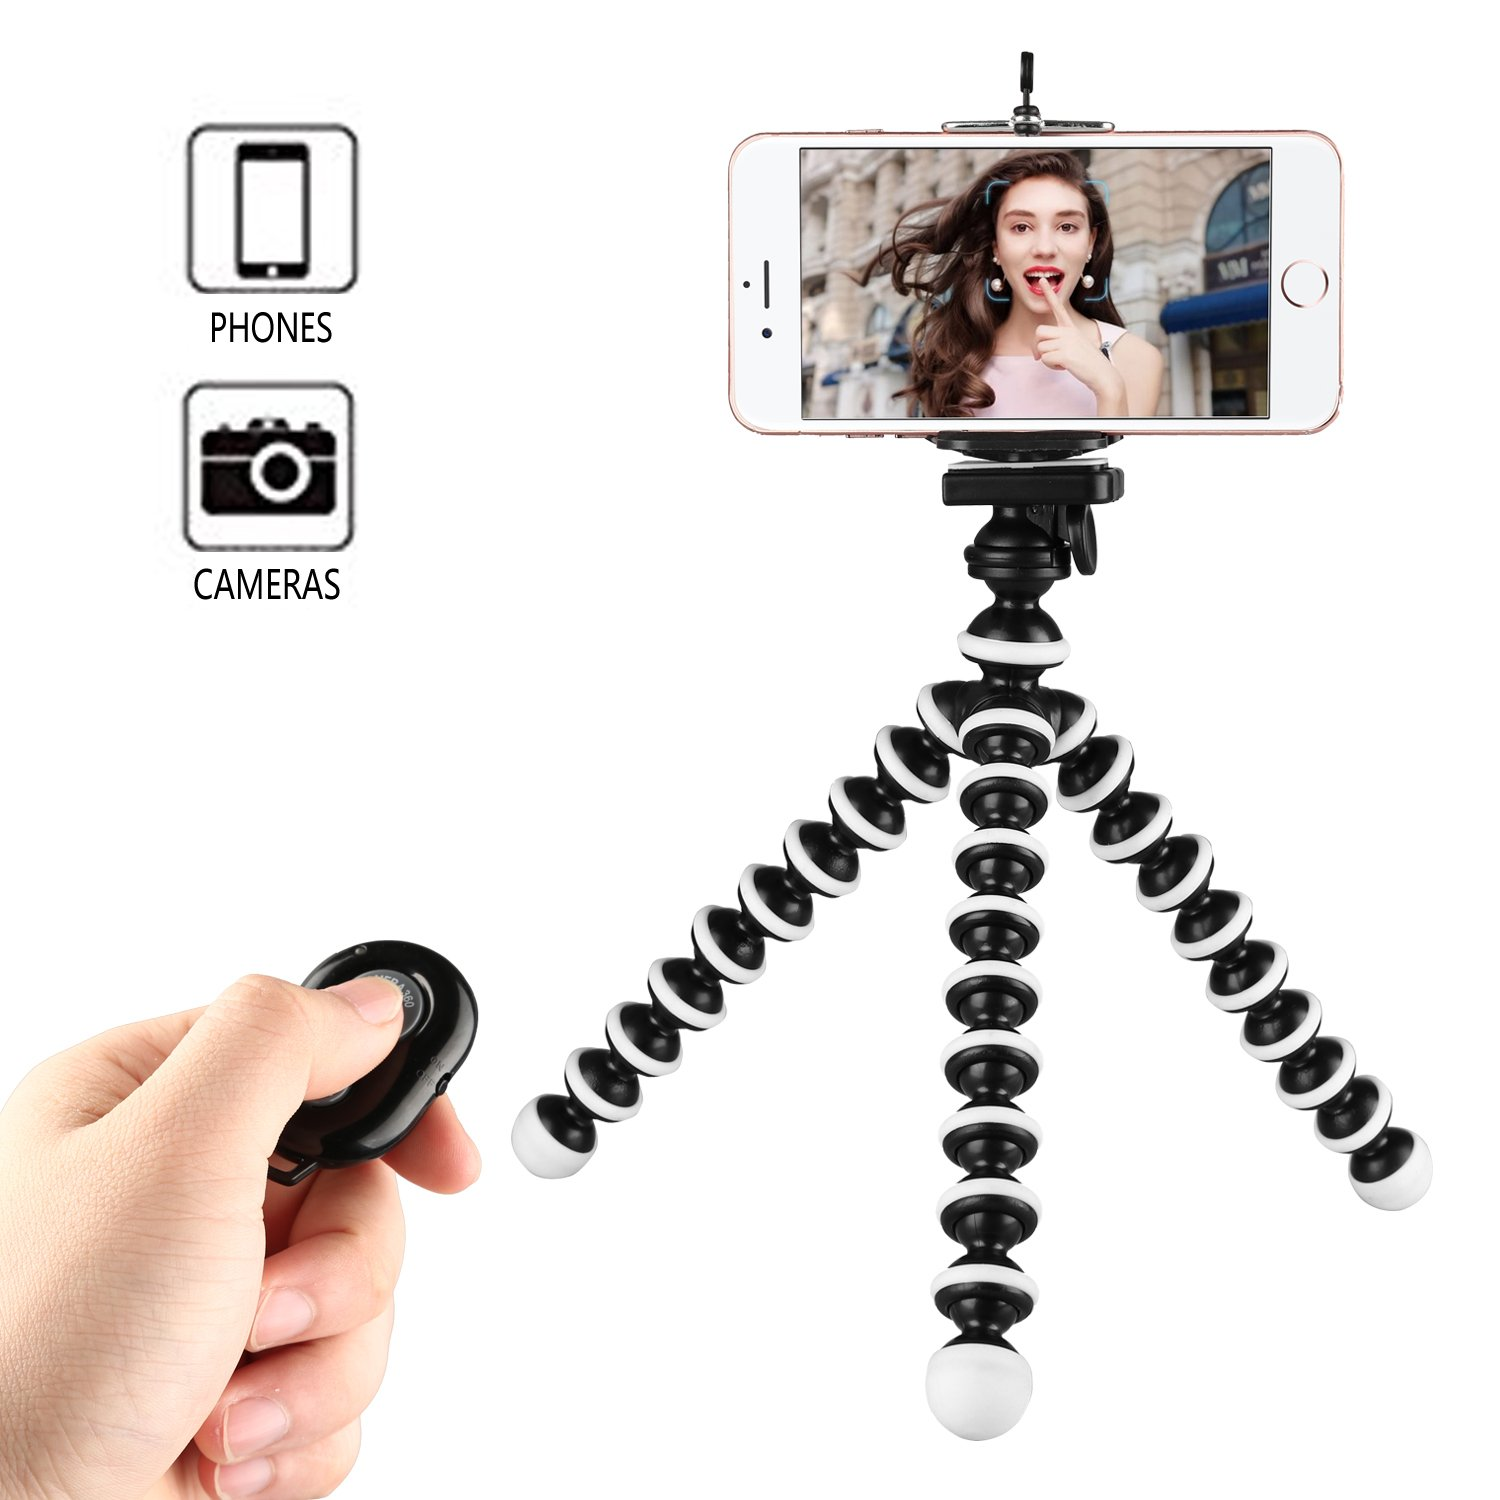 Kamisafe Mini Selfie Stick Phone Tripod Stand Holder with Universal Clip & Remote Control Compatible with Logitech Webcam C920 C922 C930e C615 iPhone X 8s 7 Plus 6s Plus Galaxy S8 Plus S8 Edge S7 by Kamisafe